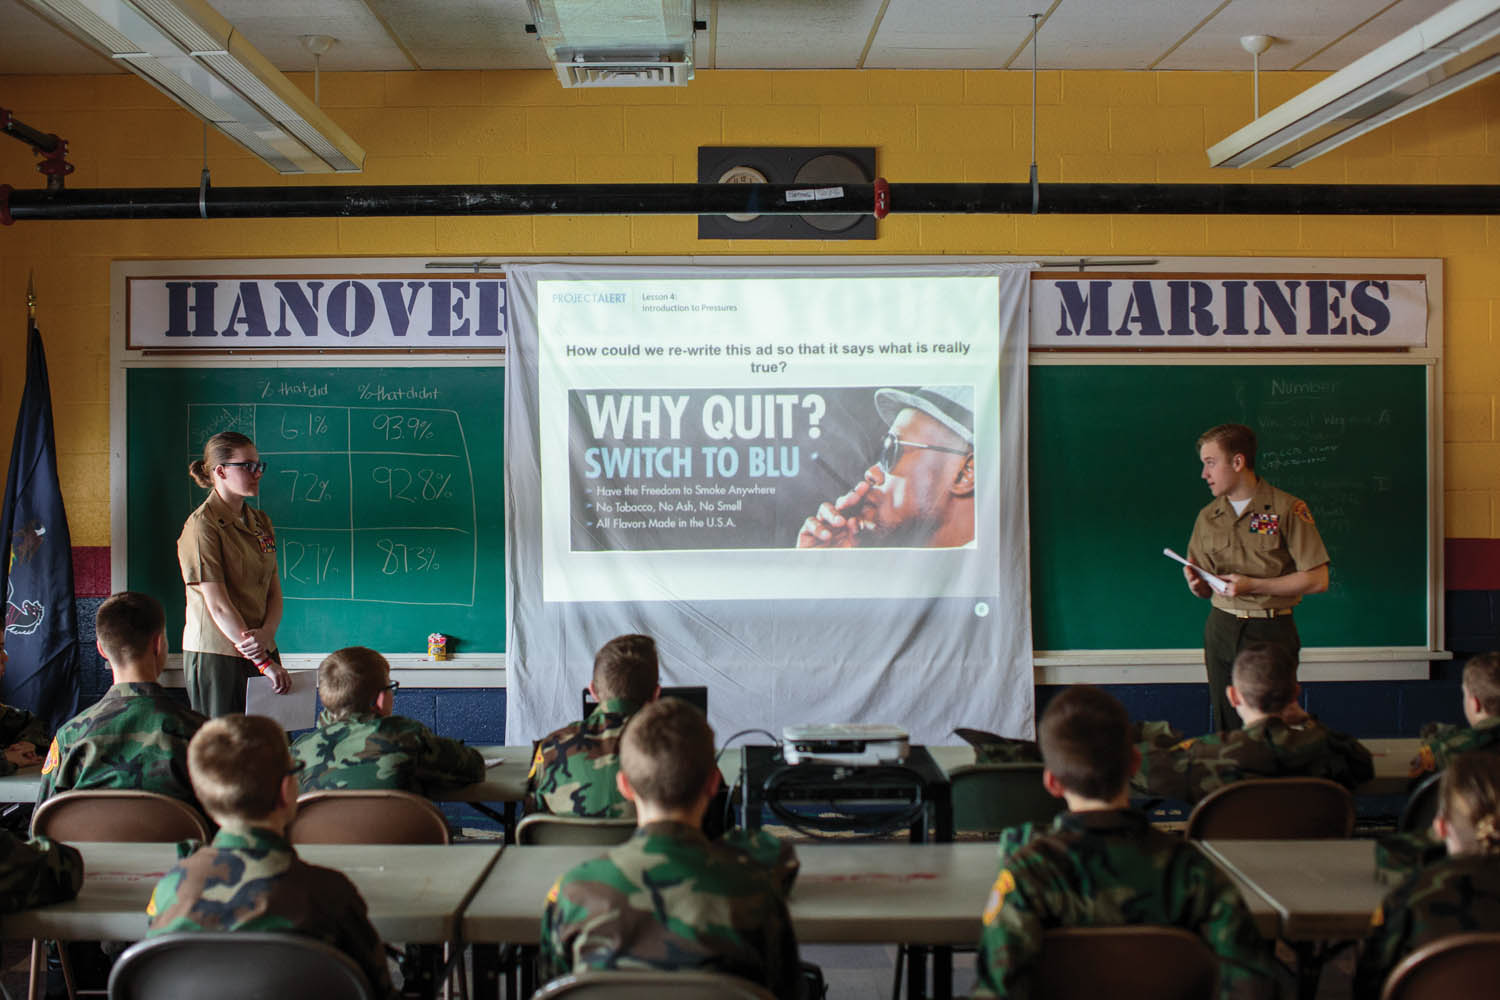 Young Marines attend a meeting that focuses on drug awareness (Hanover, PA). The Young Marines is a nonprofit organization focusing on youth development in categories such as citizenship, patriotism, and drug-free lifestyles. The group has approximately 300 clubs across the United States and internationally, with students ranging in age from eight to eighteen. Photographed by Sarah Blesener